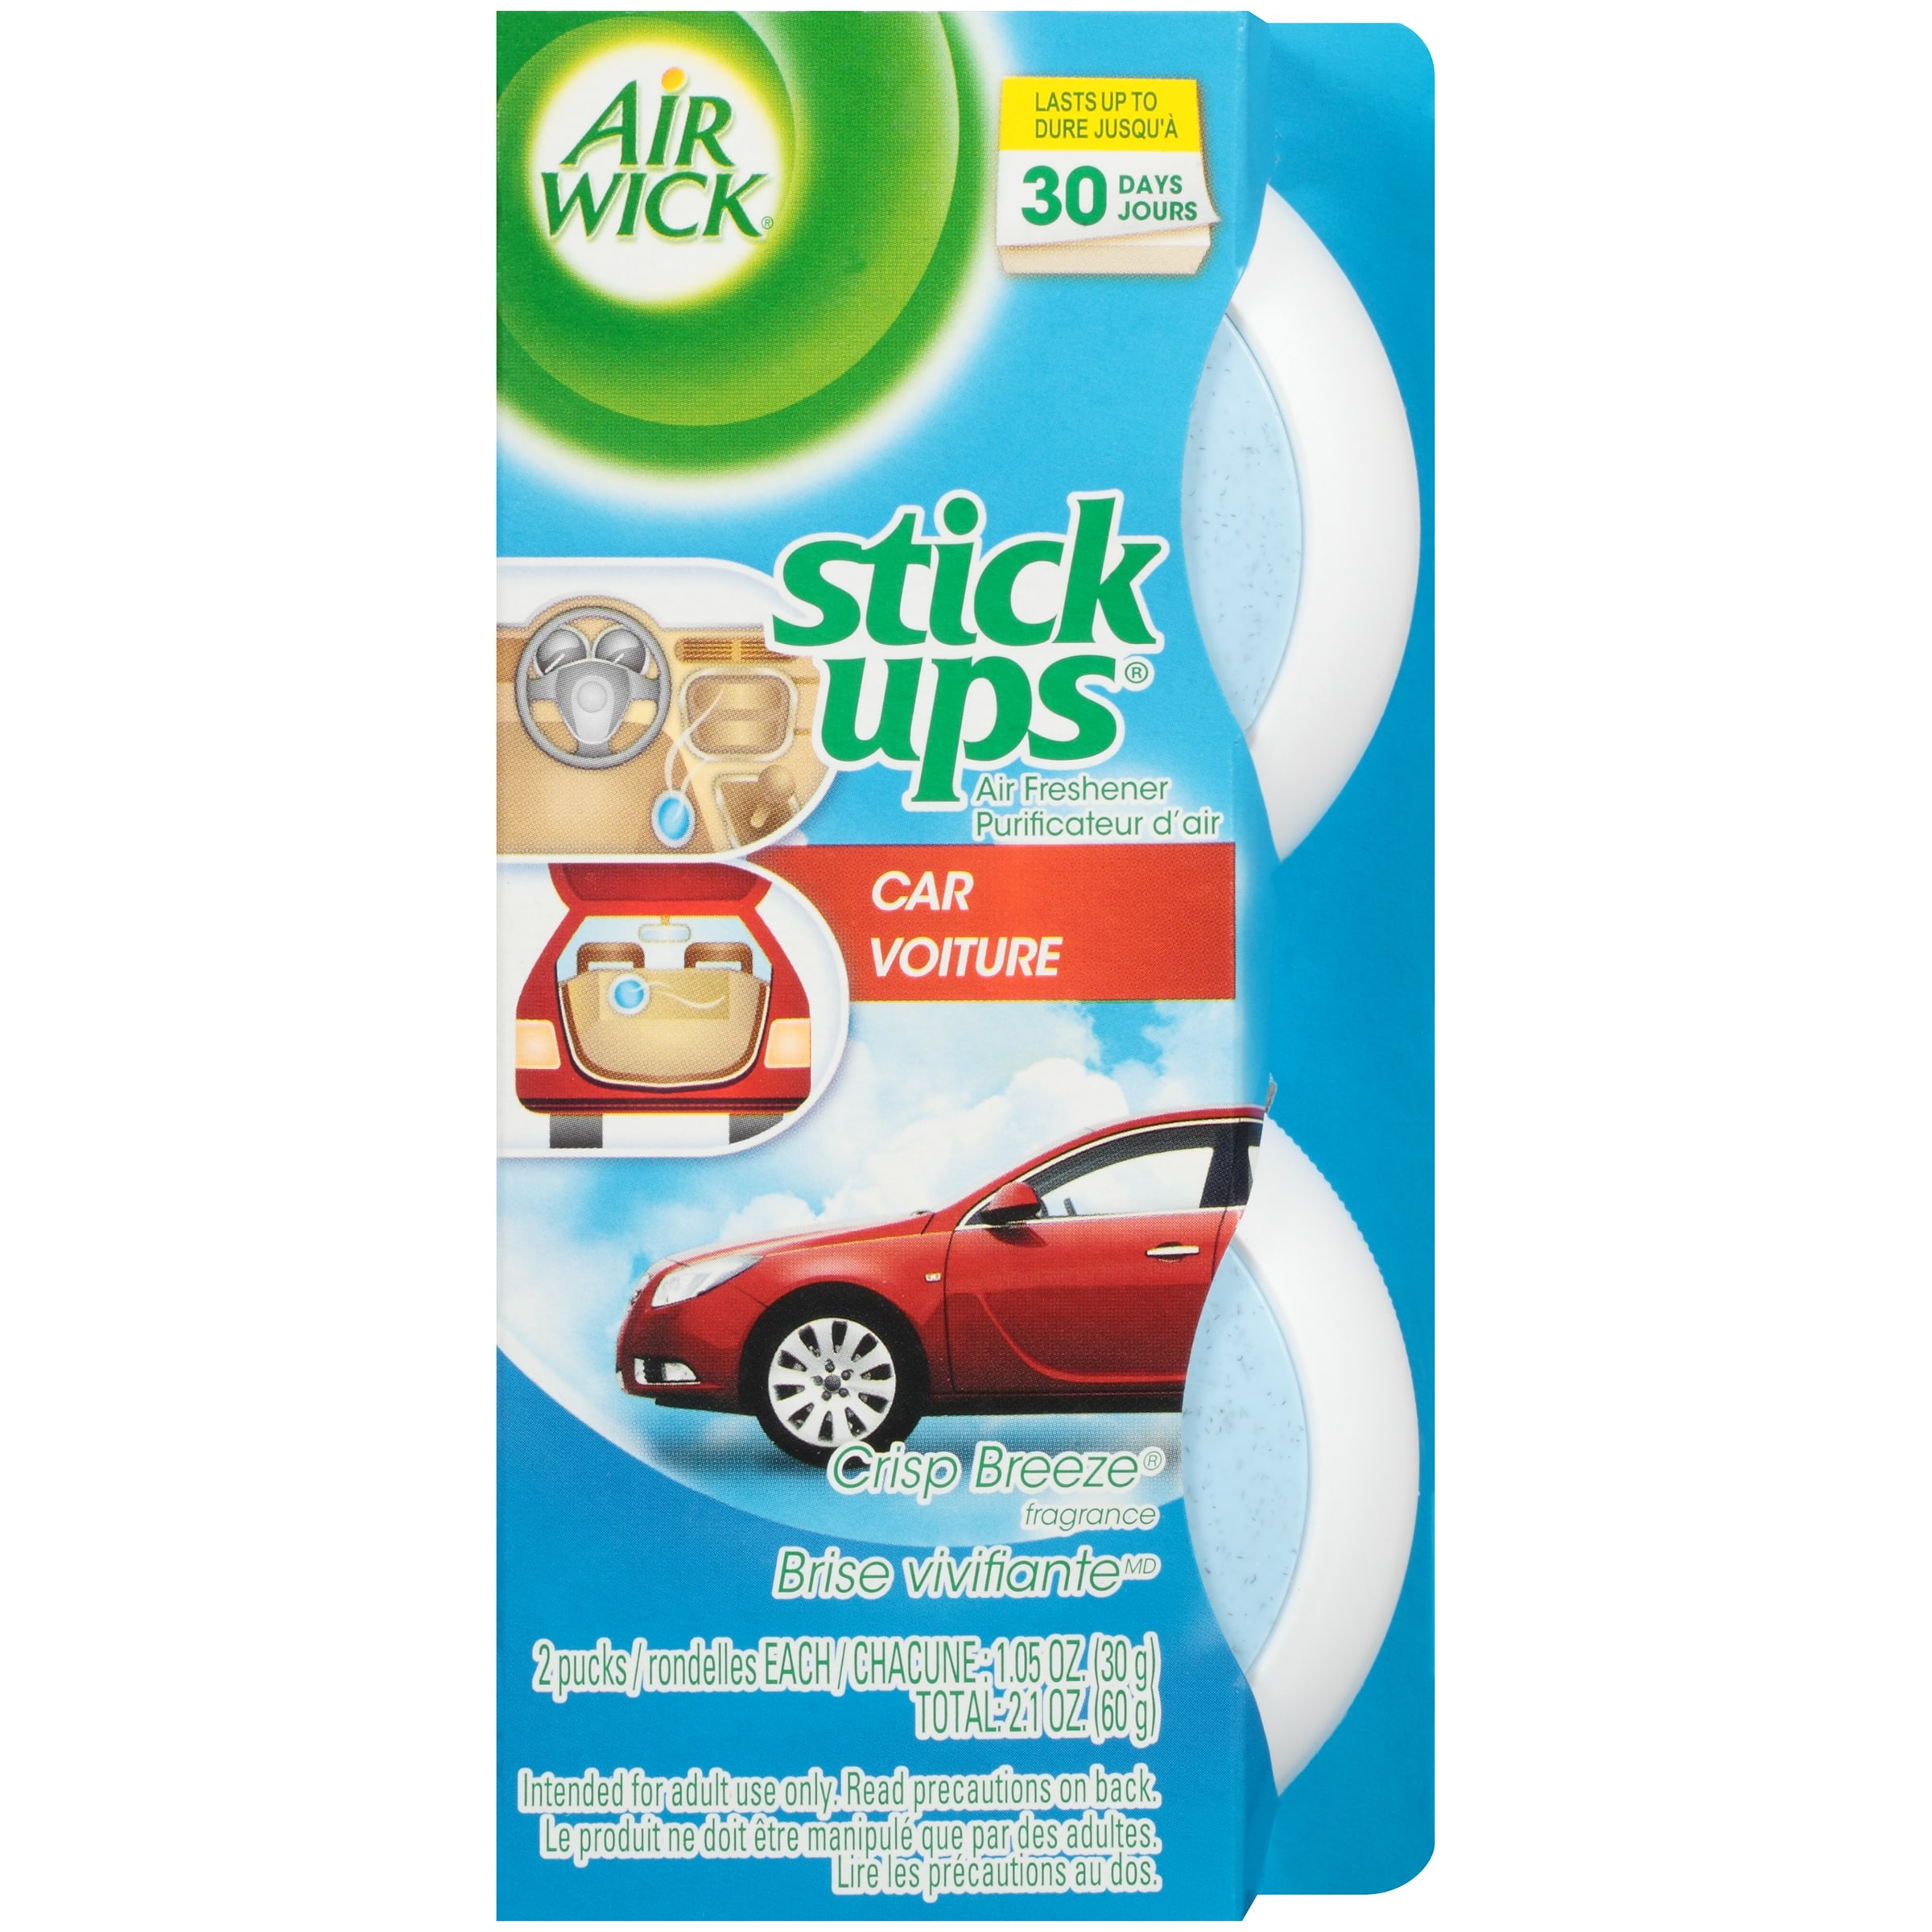 Free Airwick 2.1 oz Stick Ups Air Freshener (Assorted Varieties) After Coupon @ Kmart B&M via iOS or Android App - Must Be Loaded on Friday, 08/05/16 Only!